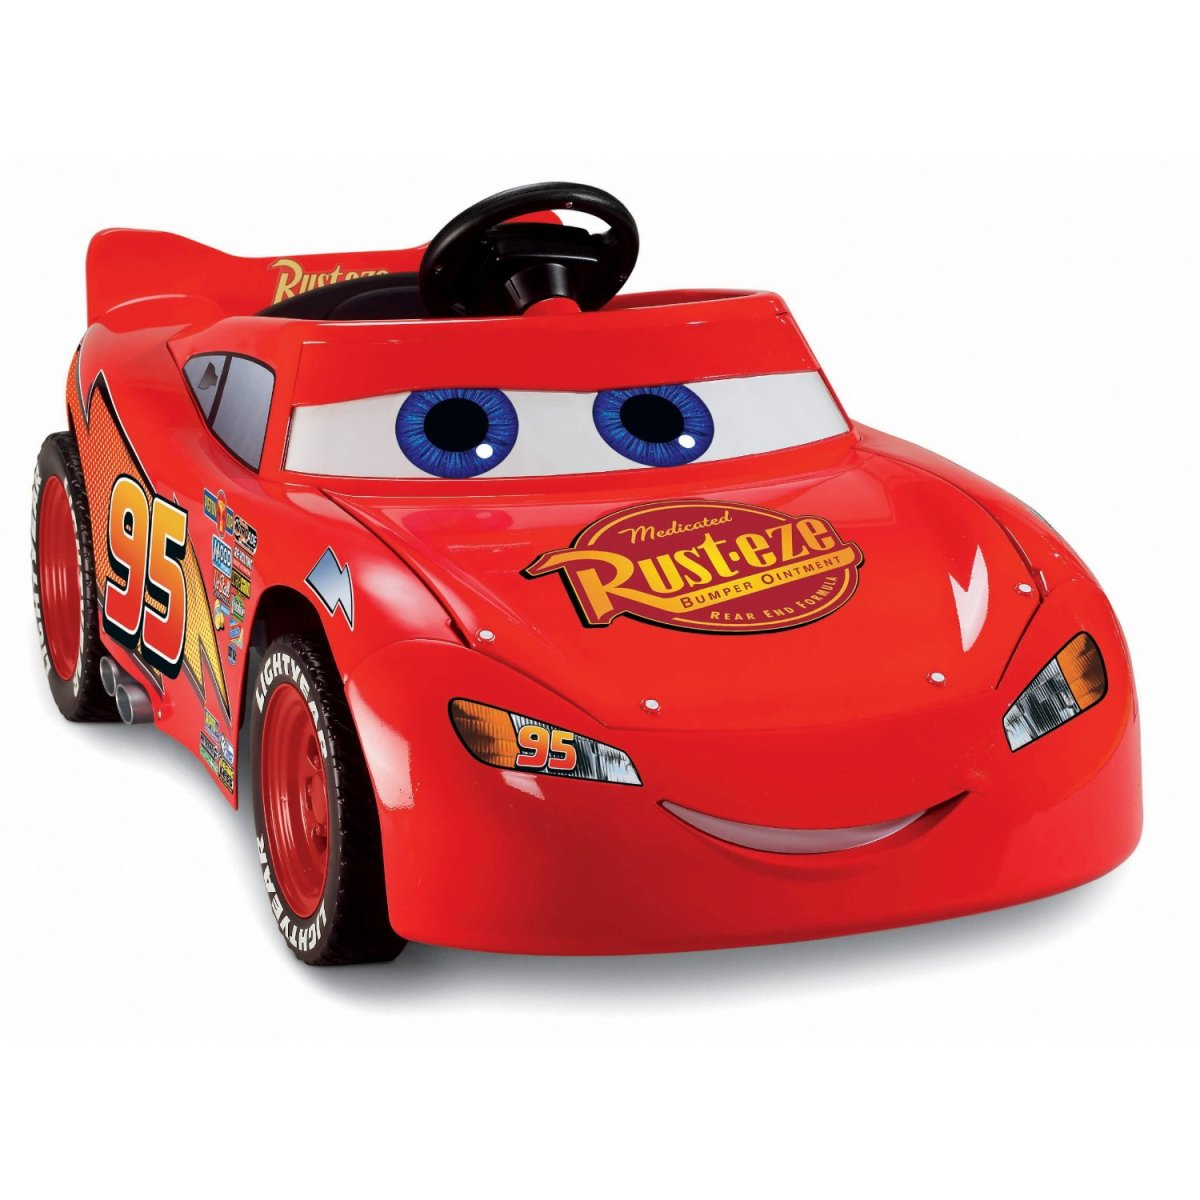 The Lightning McQueen Power Wheels is a vibrant shade of red trimmed in black. It features decorative stickers to make this ride on toy very attractive for kids.